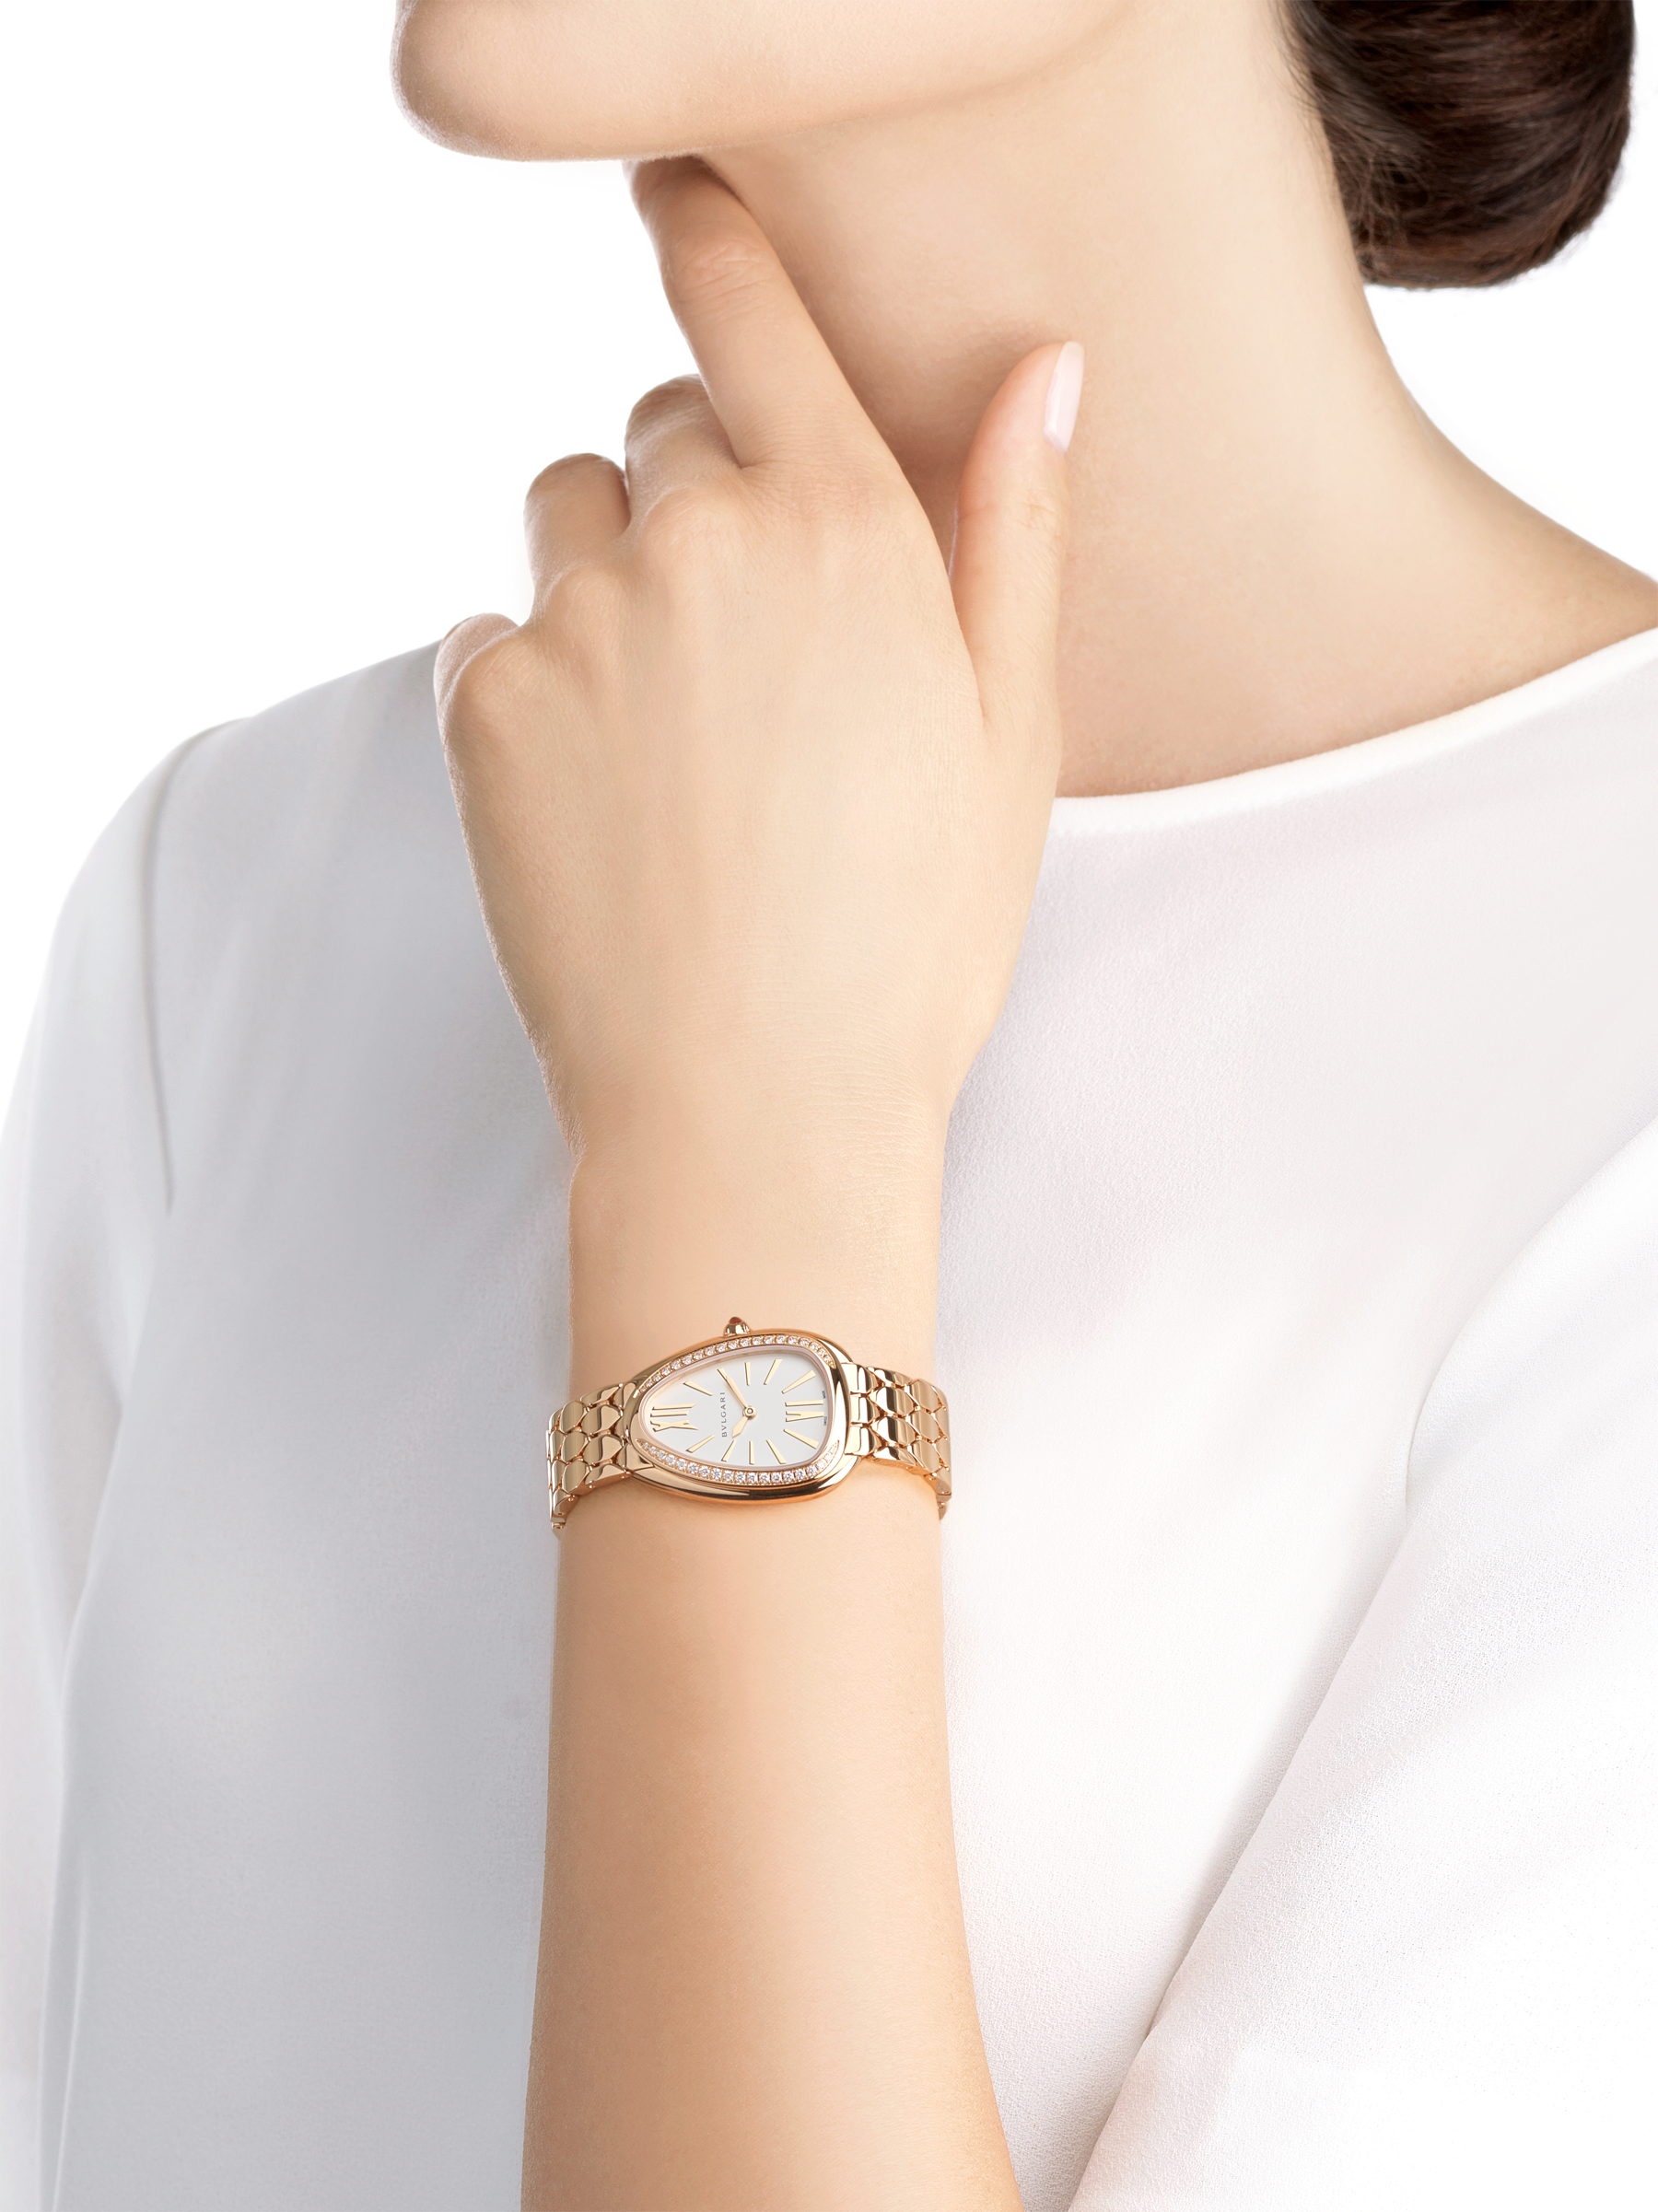 Serpenti Seduttori watch with 18 kt rose gold case, 18 kt rose gold bracelet, 18 kt rose gold bezel set with diamonds and a white silver opaline dial. 103146 image 4